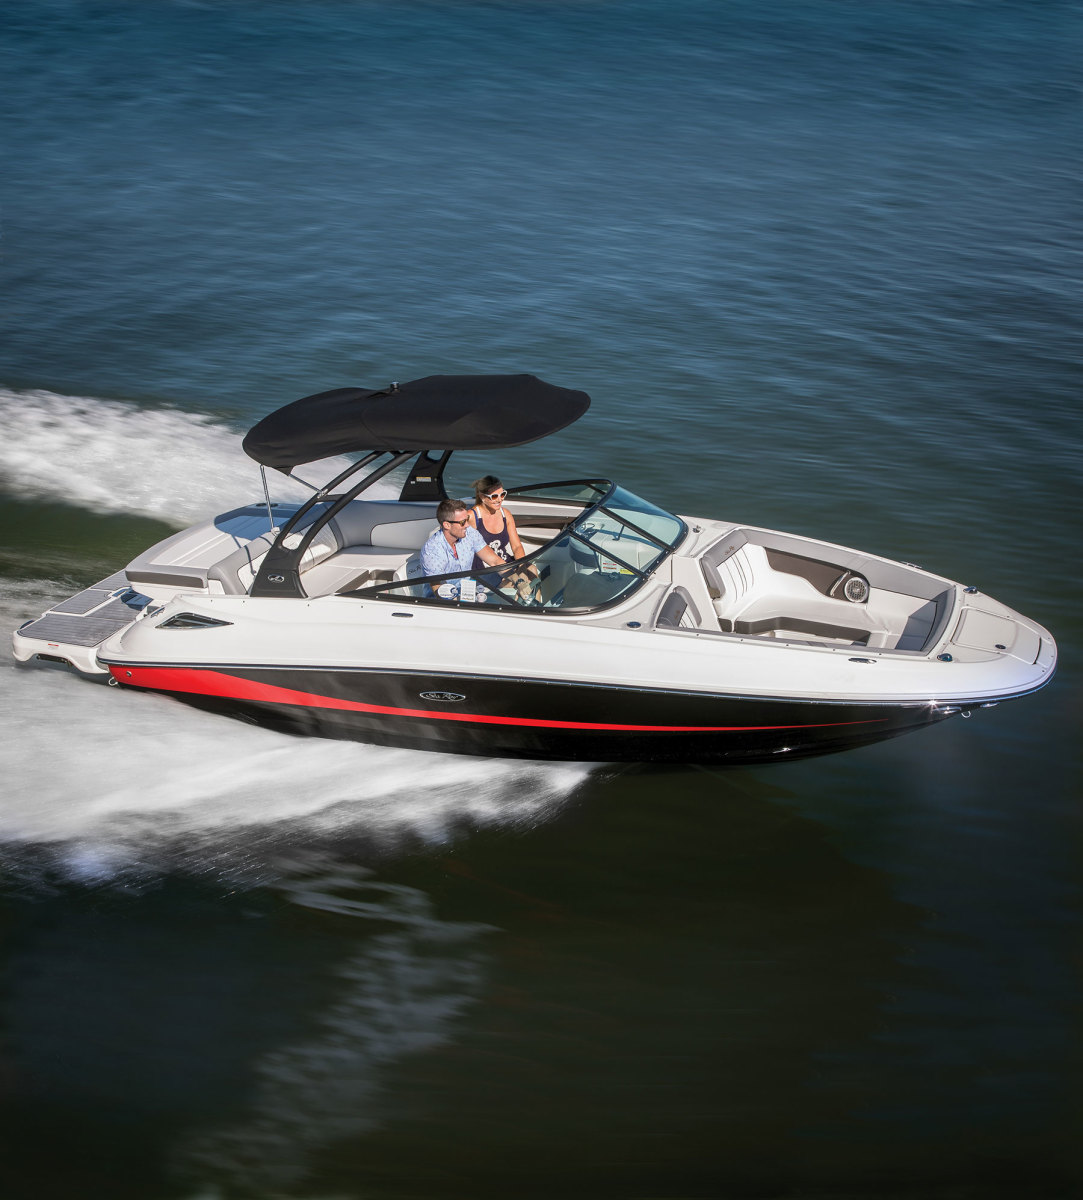 Simrad chart plotters will be offered as the optional navigation packages on all 2018 Sea Ray SPX, SDX and Sundancer series models. The Sea Ray SDX 240 is shown.